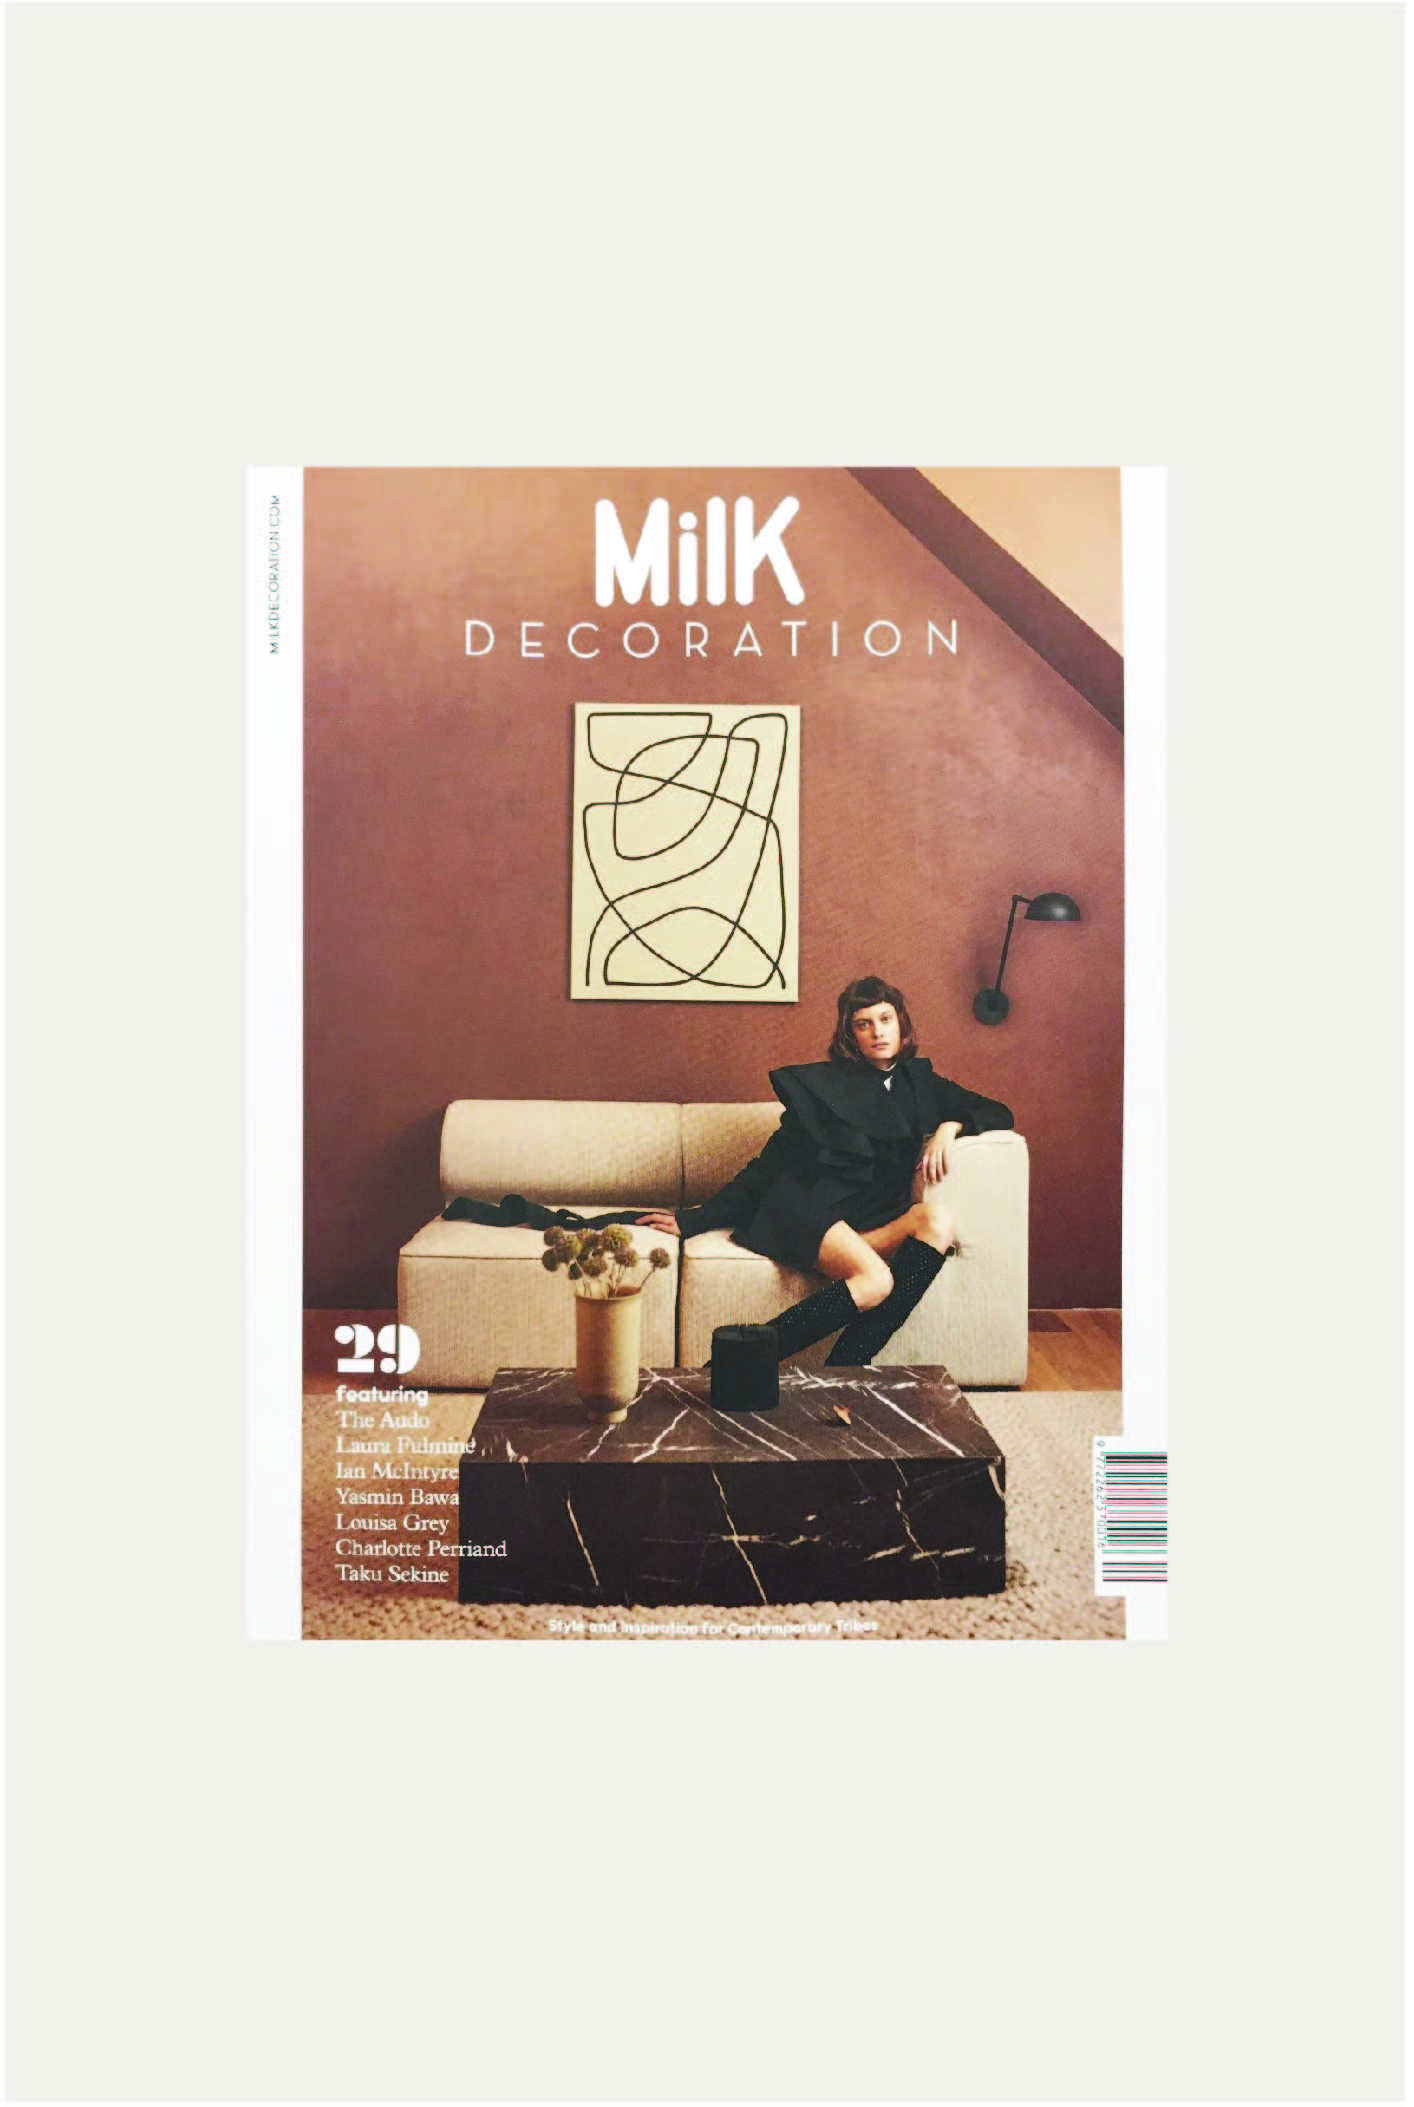 Milk Decoration Vol 29